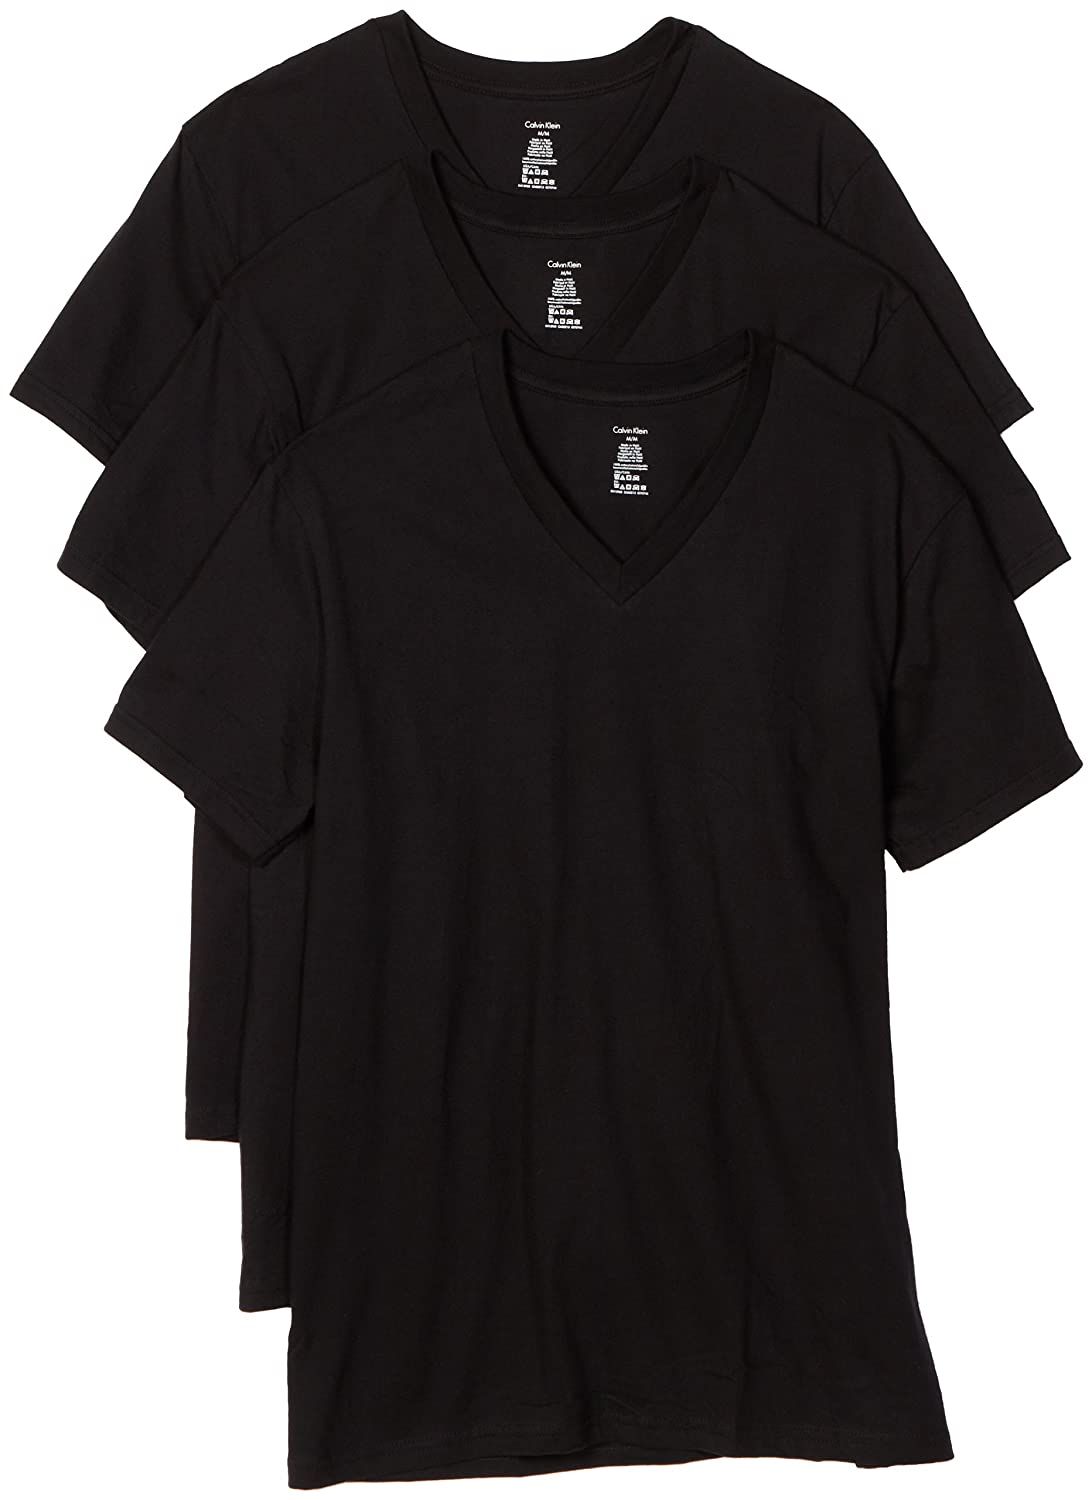 e8f37cc7 Amazon.com: Calvin Klein Men's 3-Pack Classic V-Neck T-Shirt: Clothing